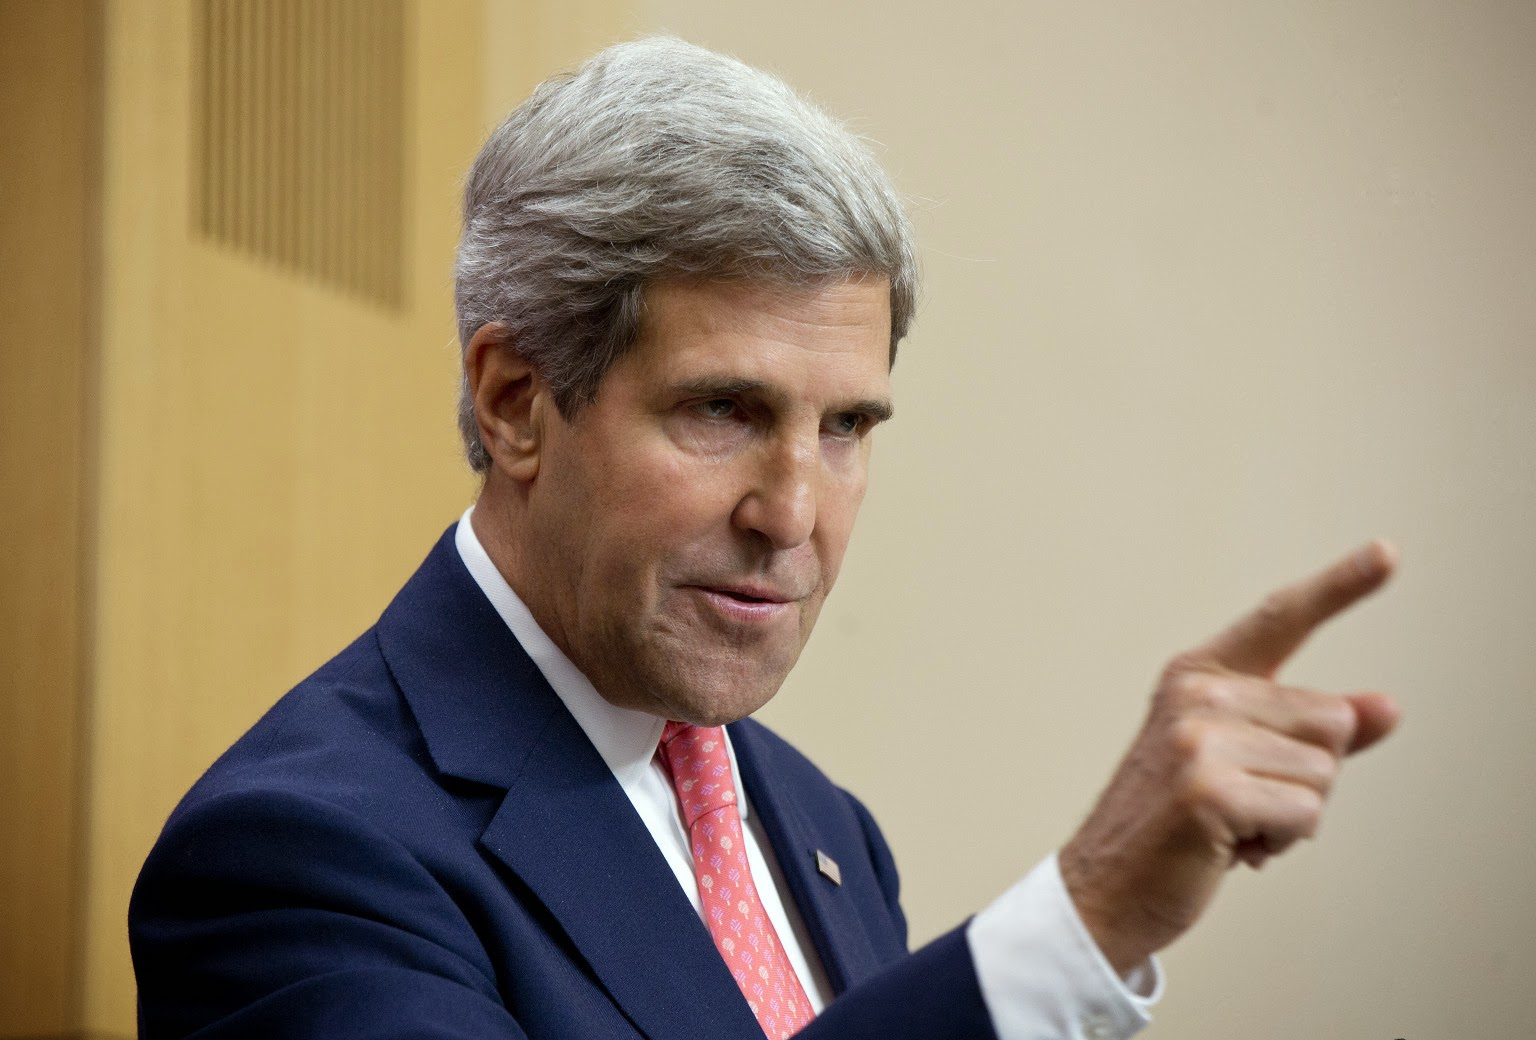 U.S. Secretary of State John Kerry. Photo by David Bebber - WPA Pool/Getty Images